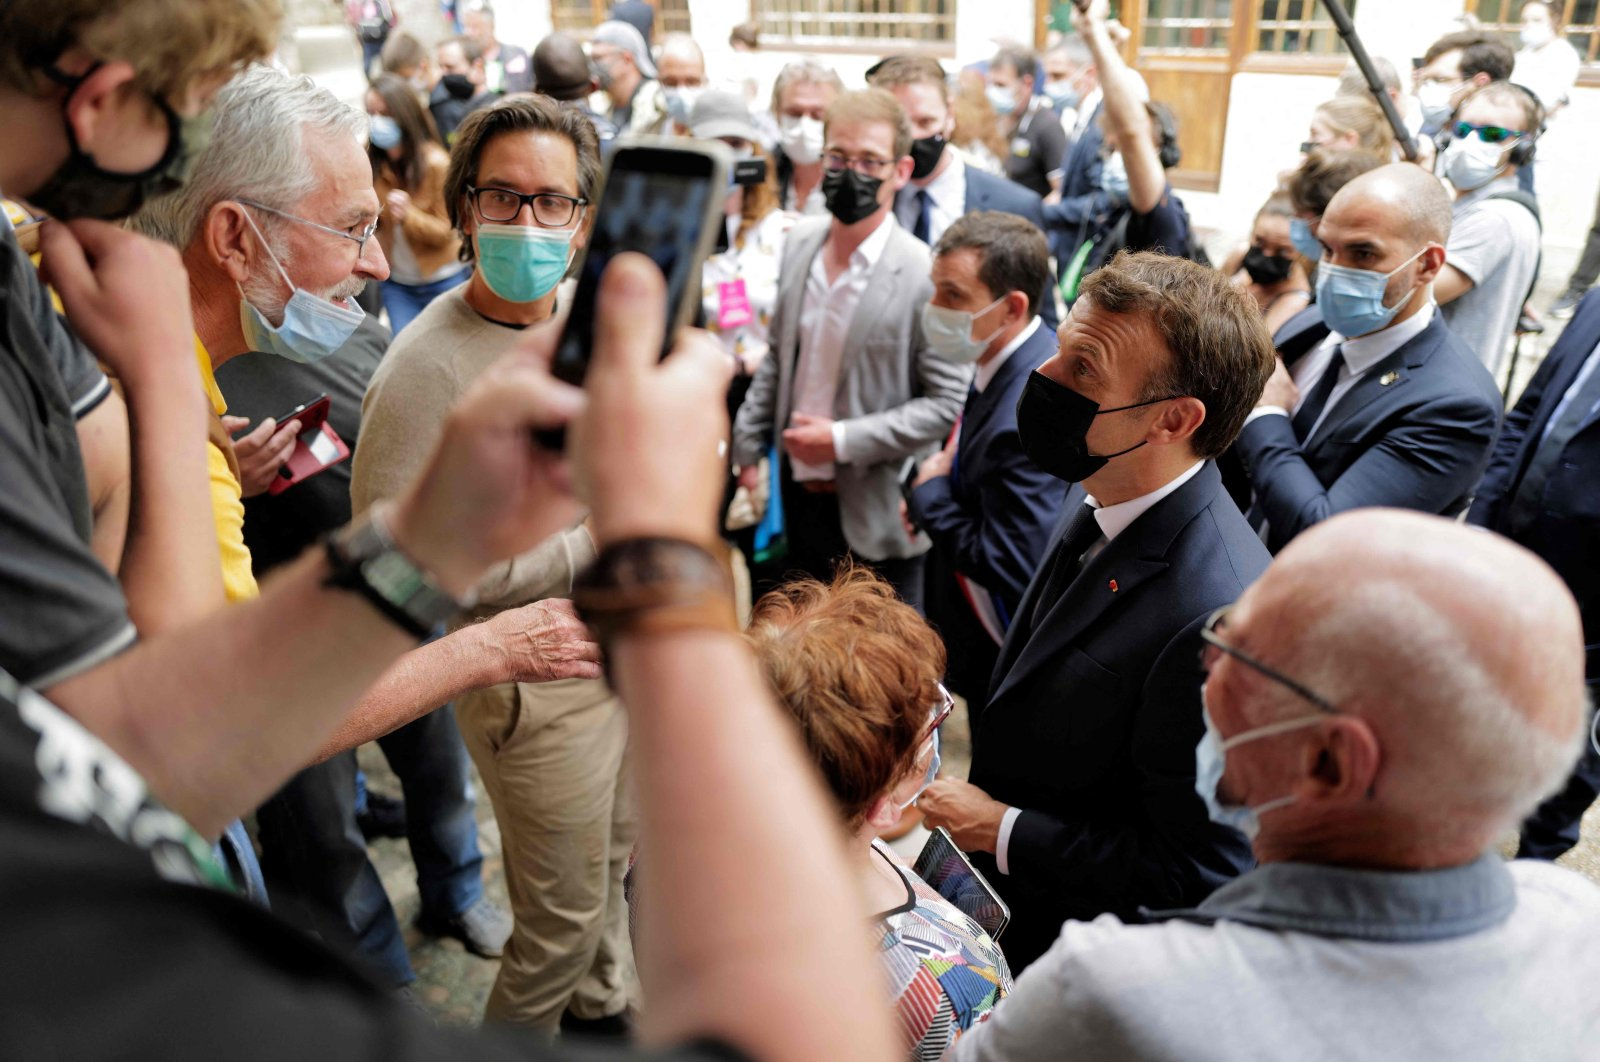 French President Emmanuel Macron meets people in Martel during a two-day visit in southern France, June 3, 2021. (AFP Photo)